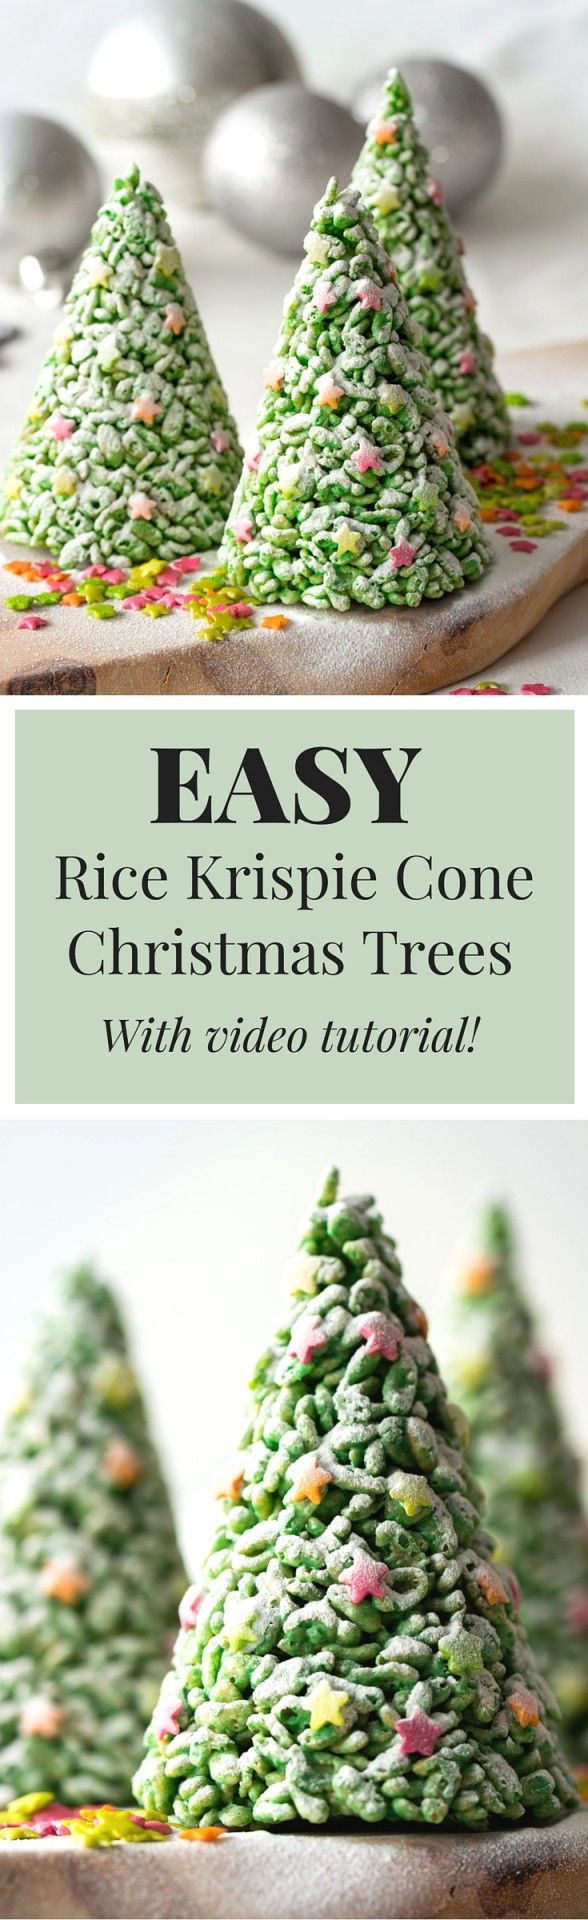 These easy Rice Krispie Cone Christmas Trees are such a fun activity to do with kids this year! Give these as gifts or eat them to yourself, with only 3 ingredients, these could not be easier!